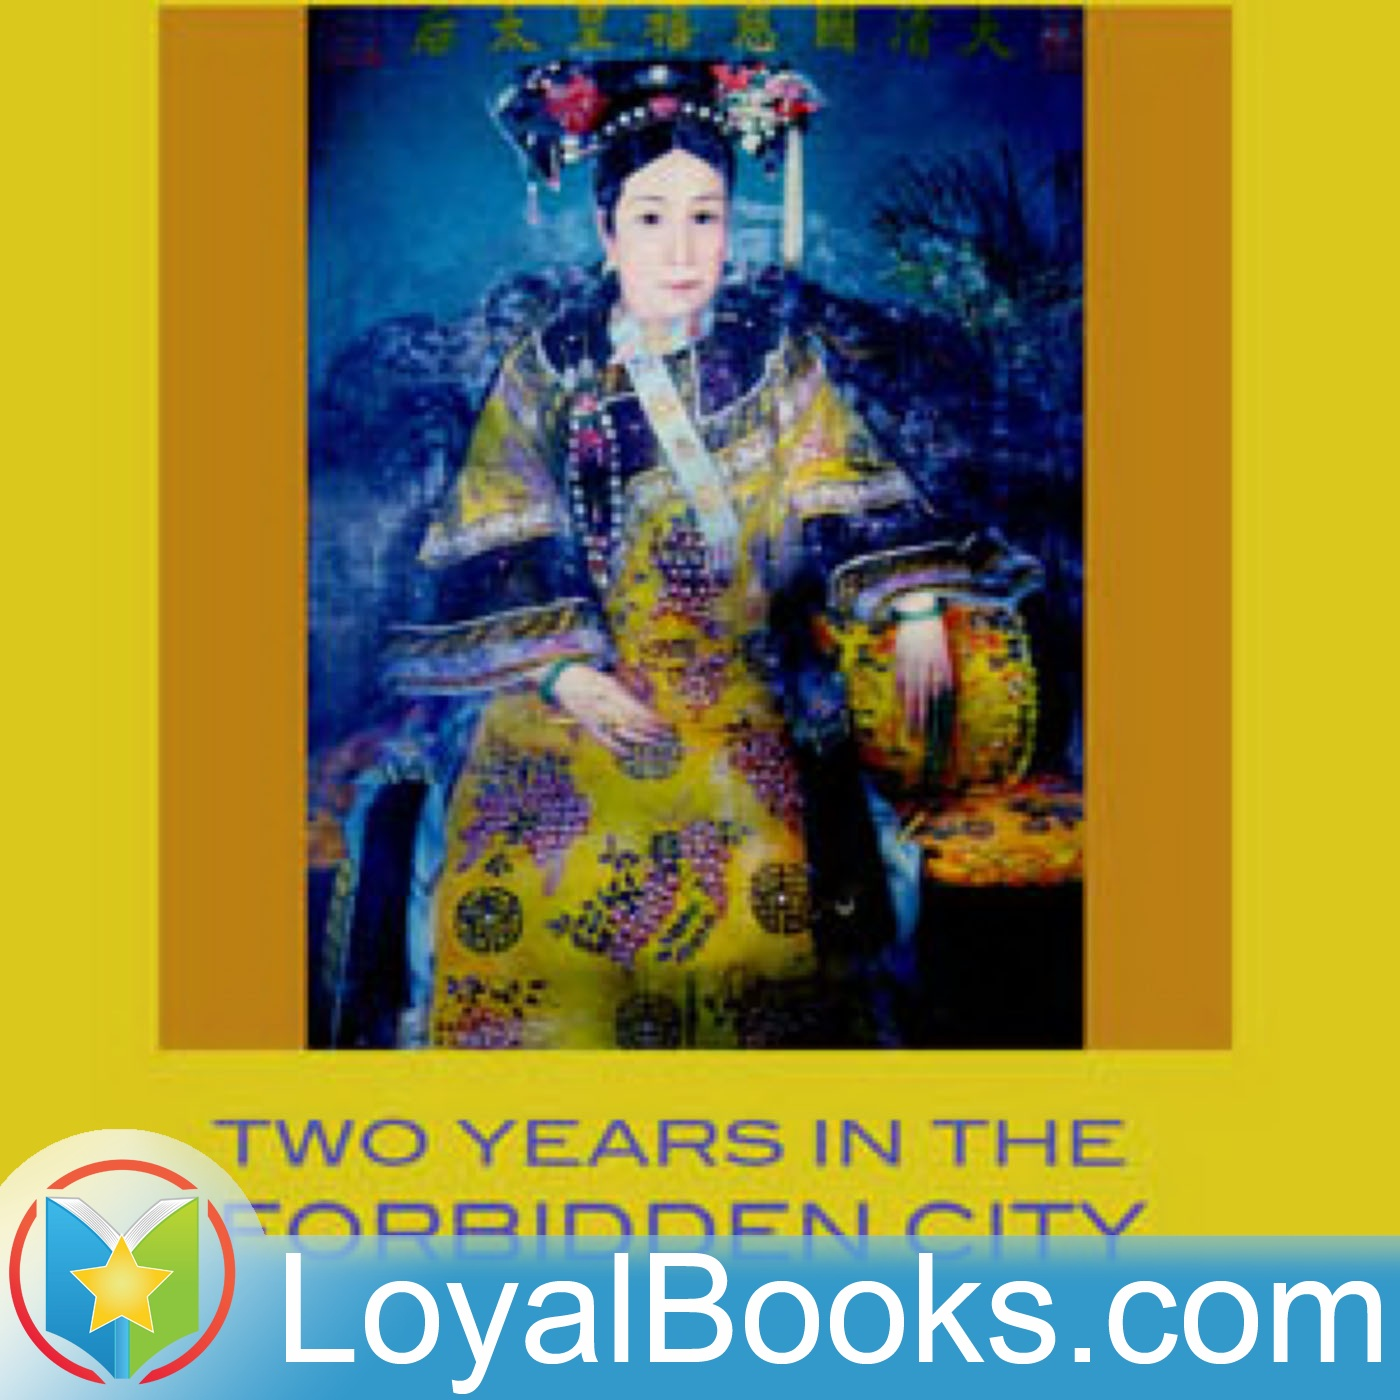 <![CDATA[Two Years in the Forbidden City by Princess Der Ling]]>